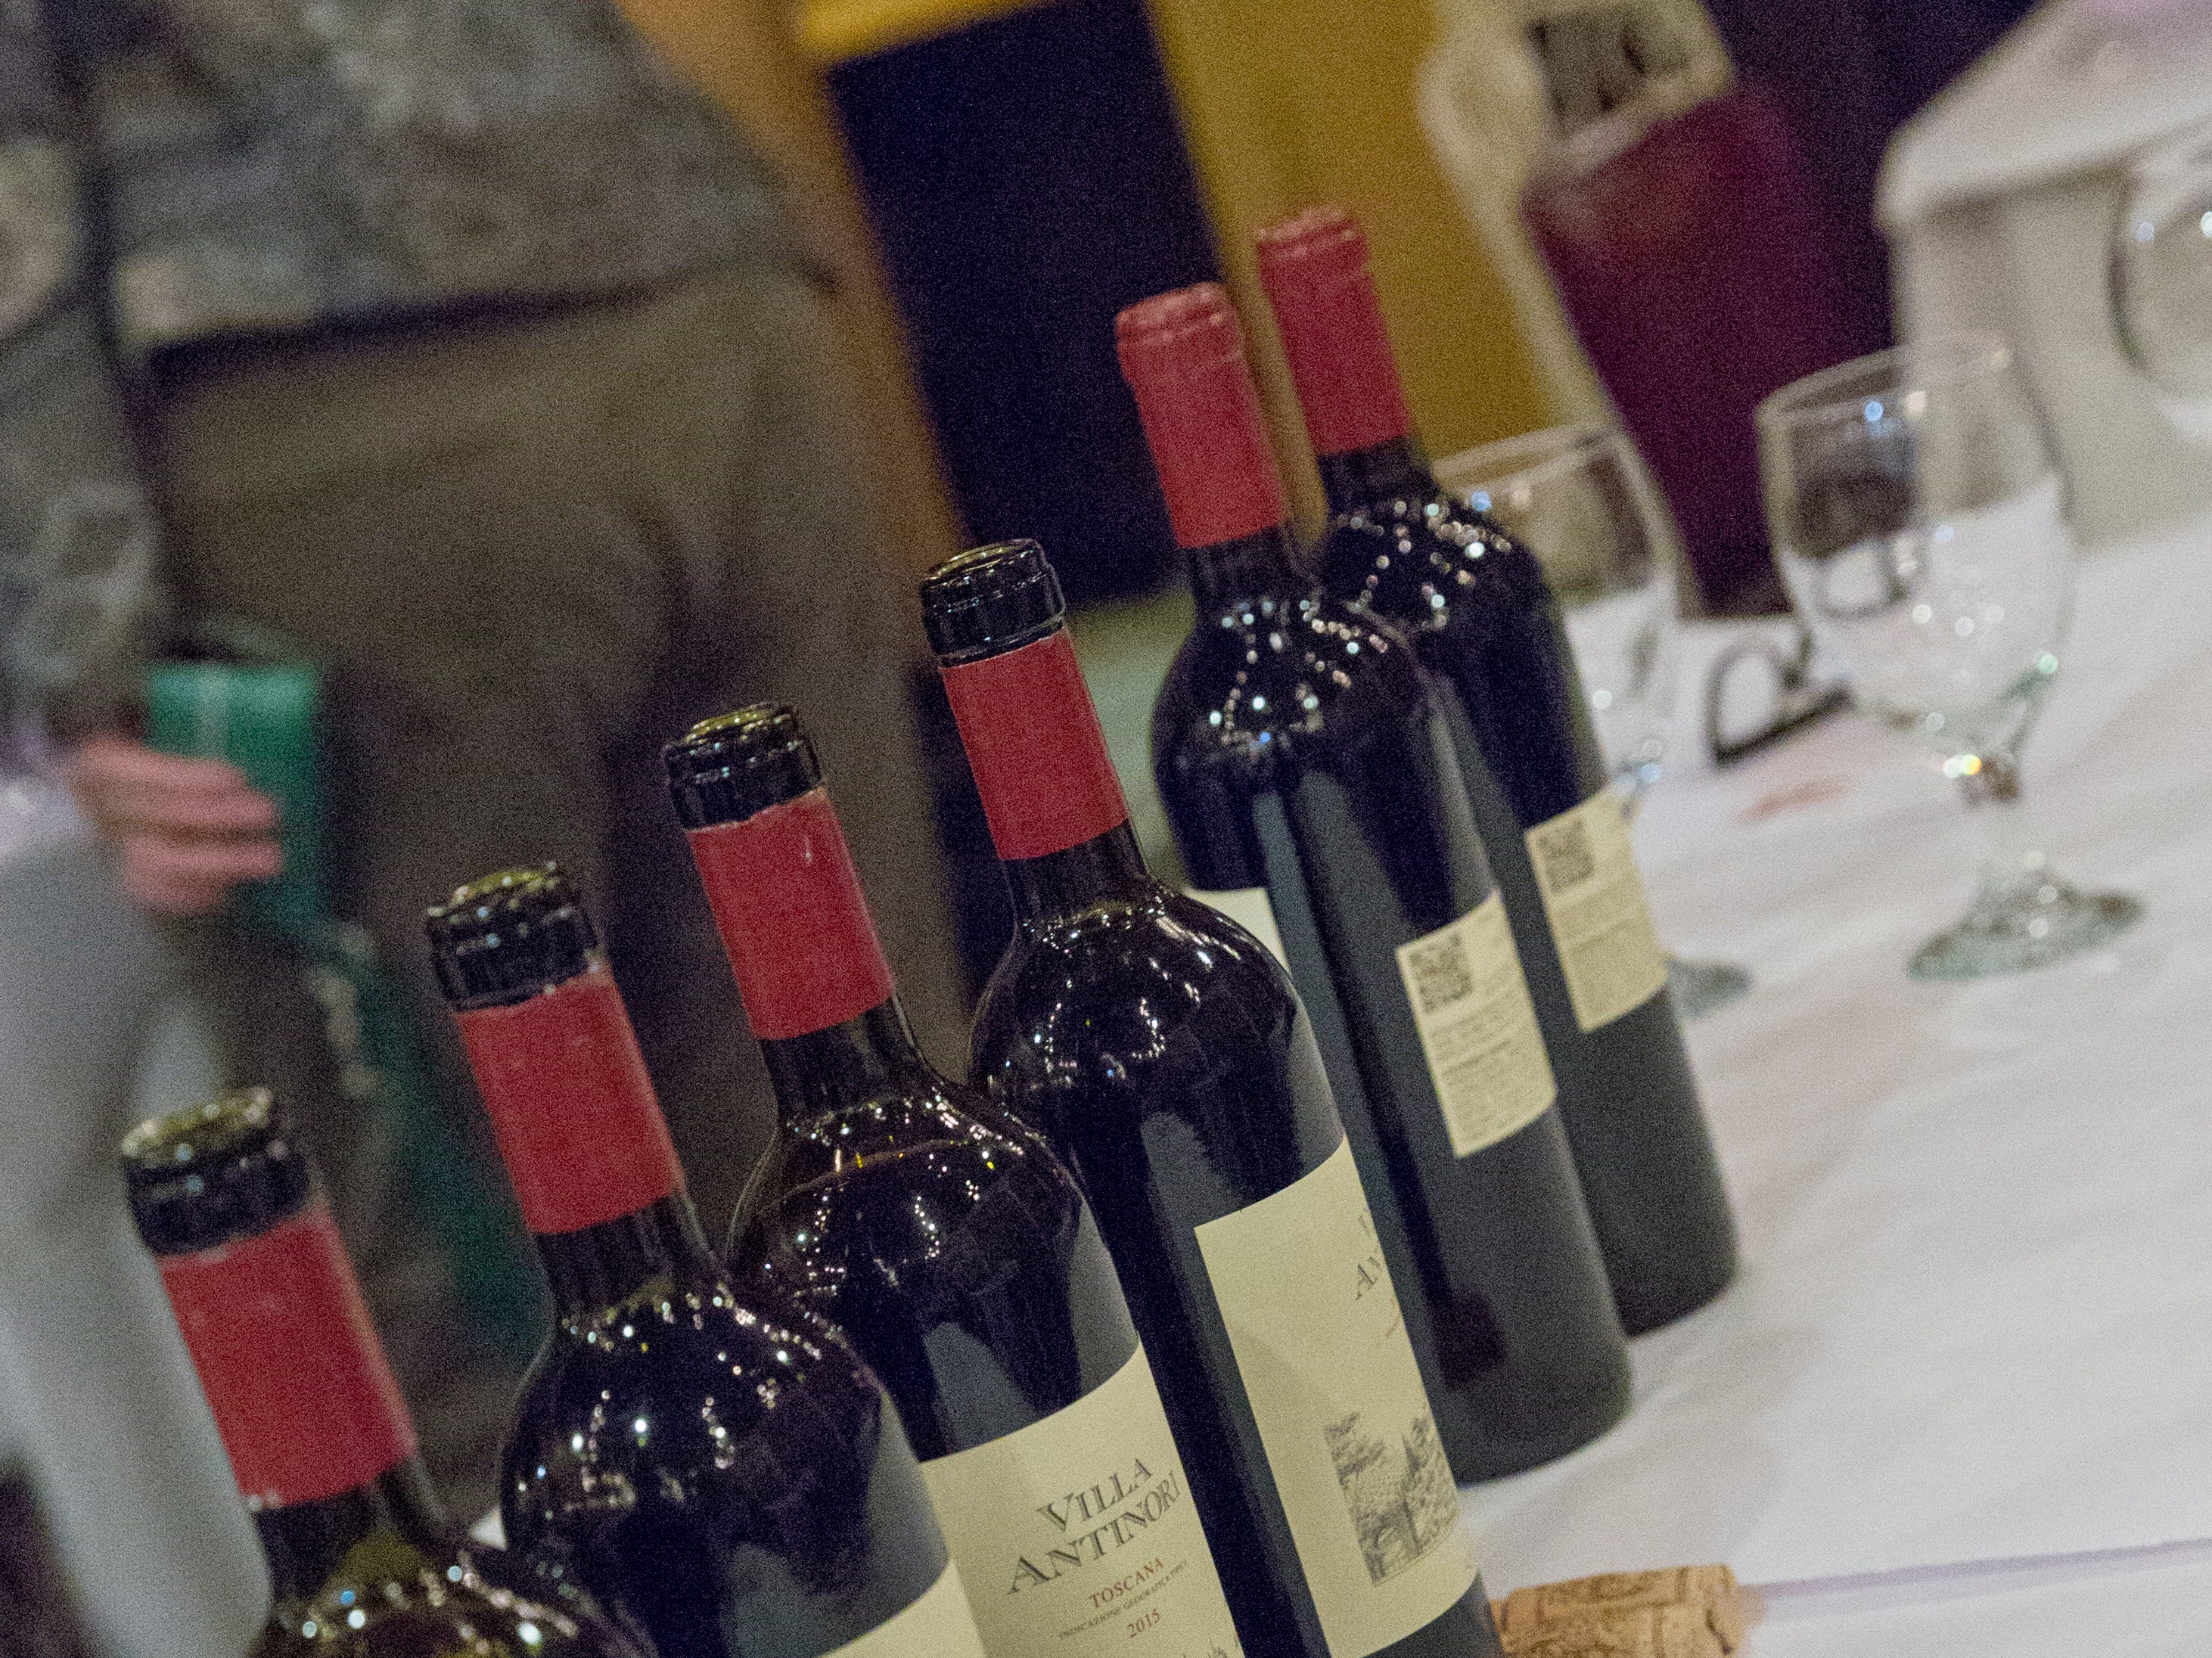 A variety of wines sit on a table awaiting the last Wine Tasting Dinner at Baudo's Thursday night, January 17, 2019.